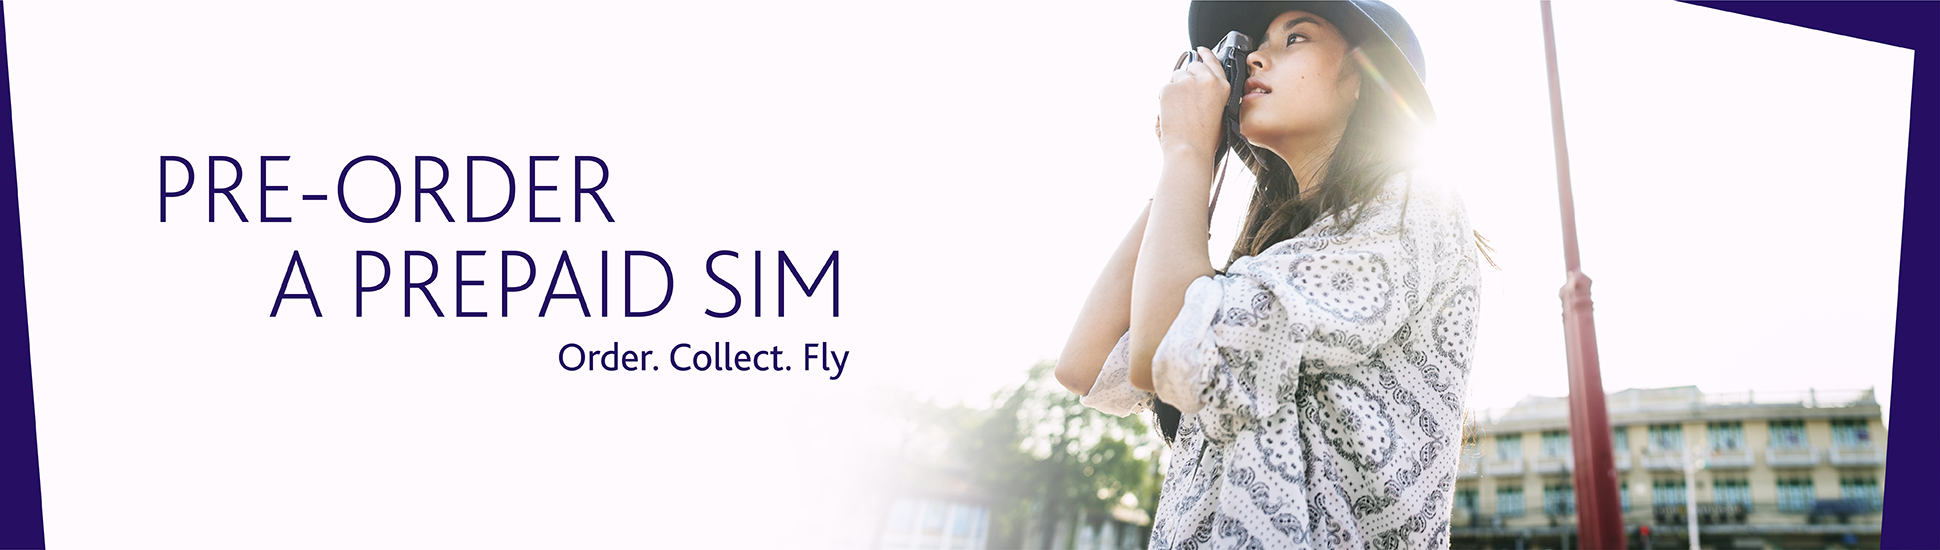 Pre-order a prepaid SIM & roam across multiple destination. Order. Collect. Fly.